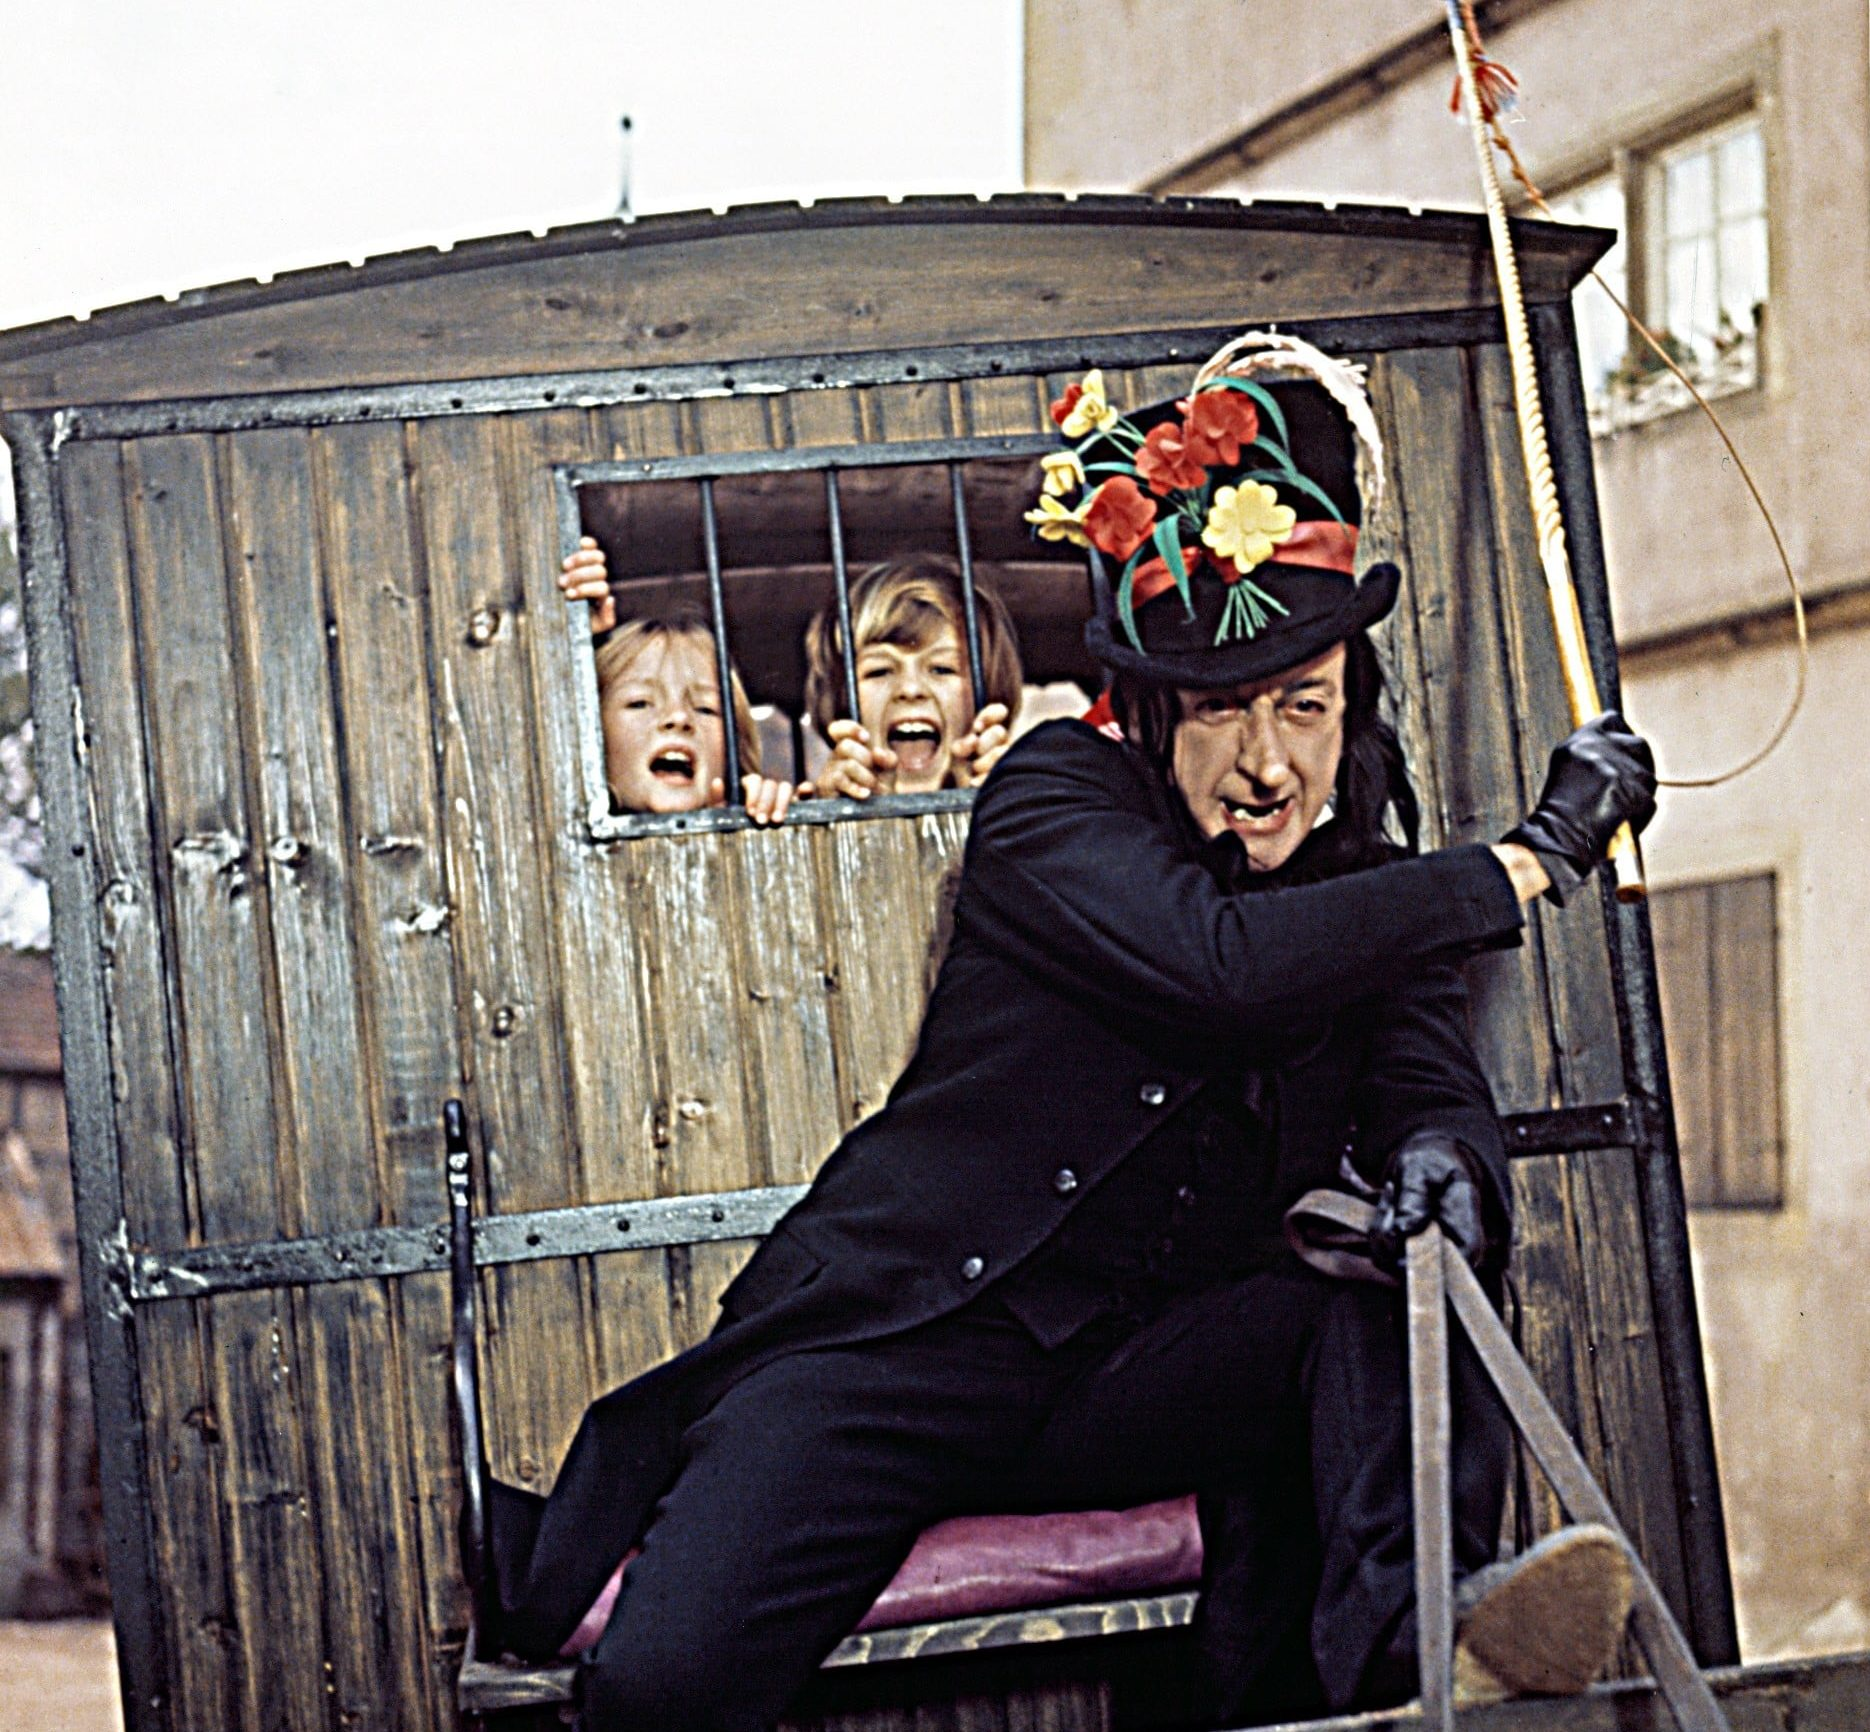 Child Catcher From Chitty Chitty Bang Bang e1605533880580 20 Characters That Scared The Life Out Of Us As Children